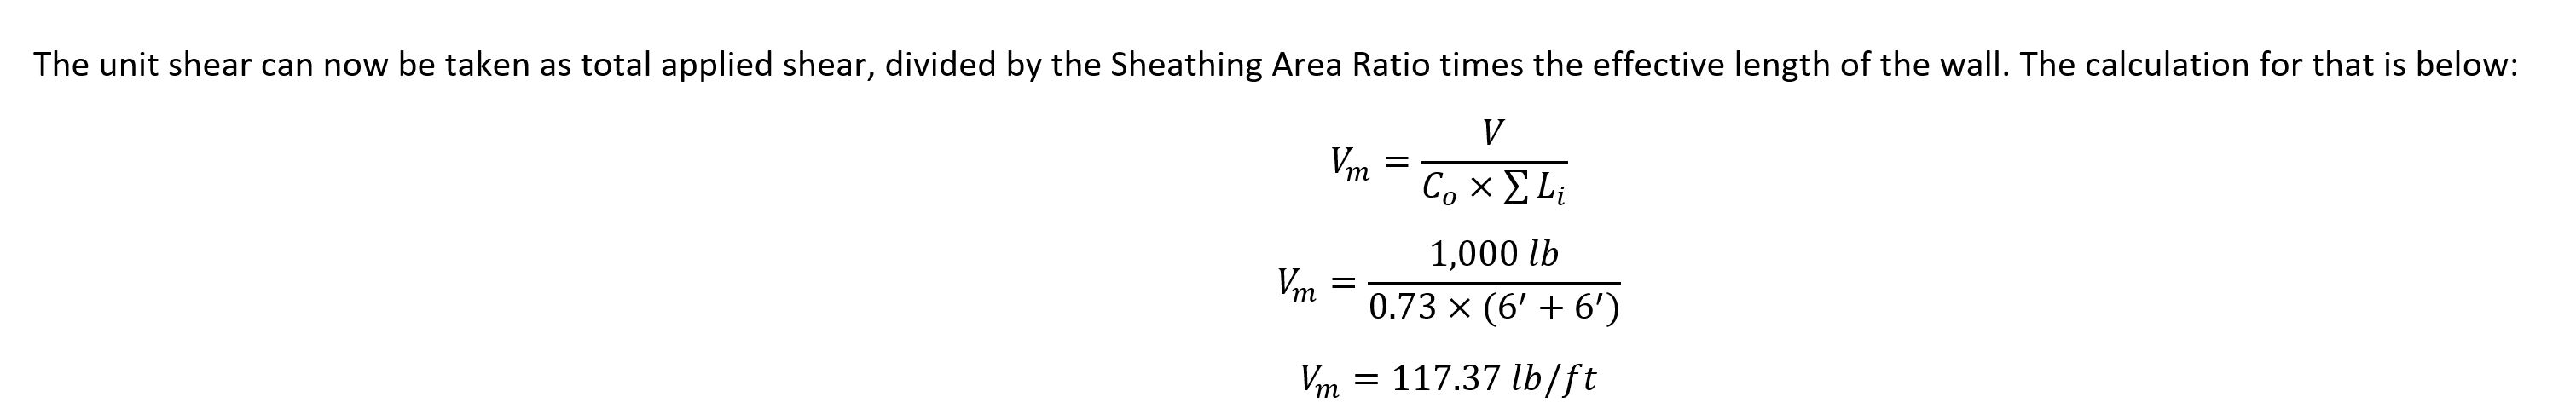 shearwall calculations2